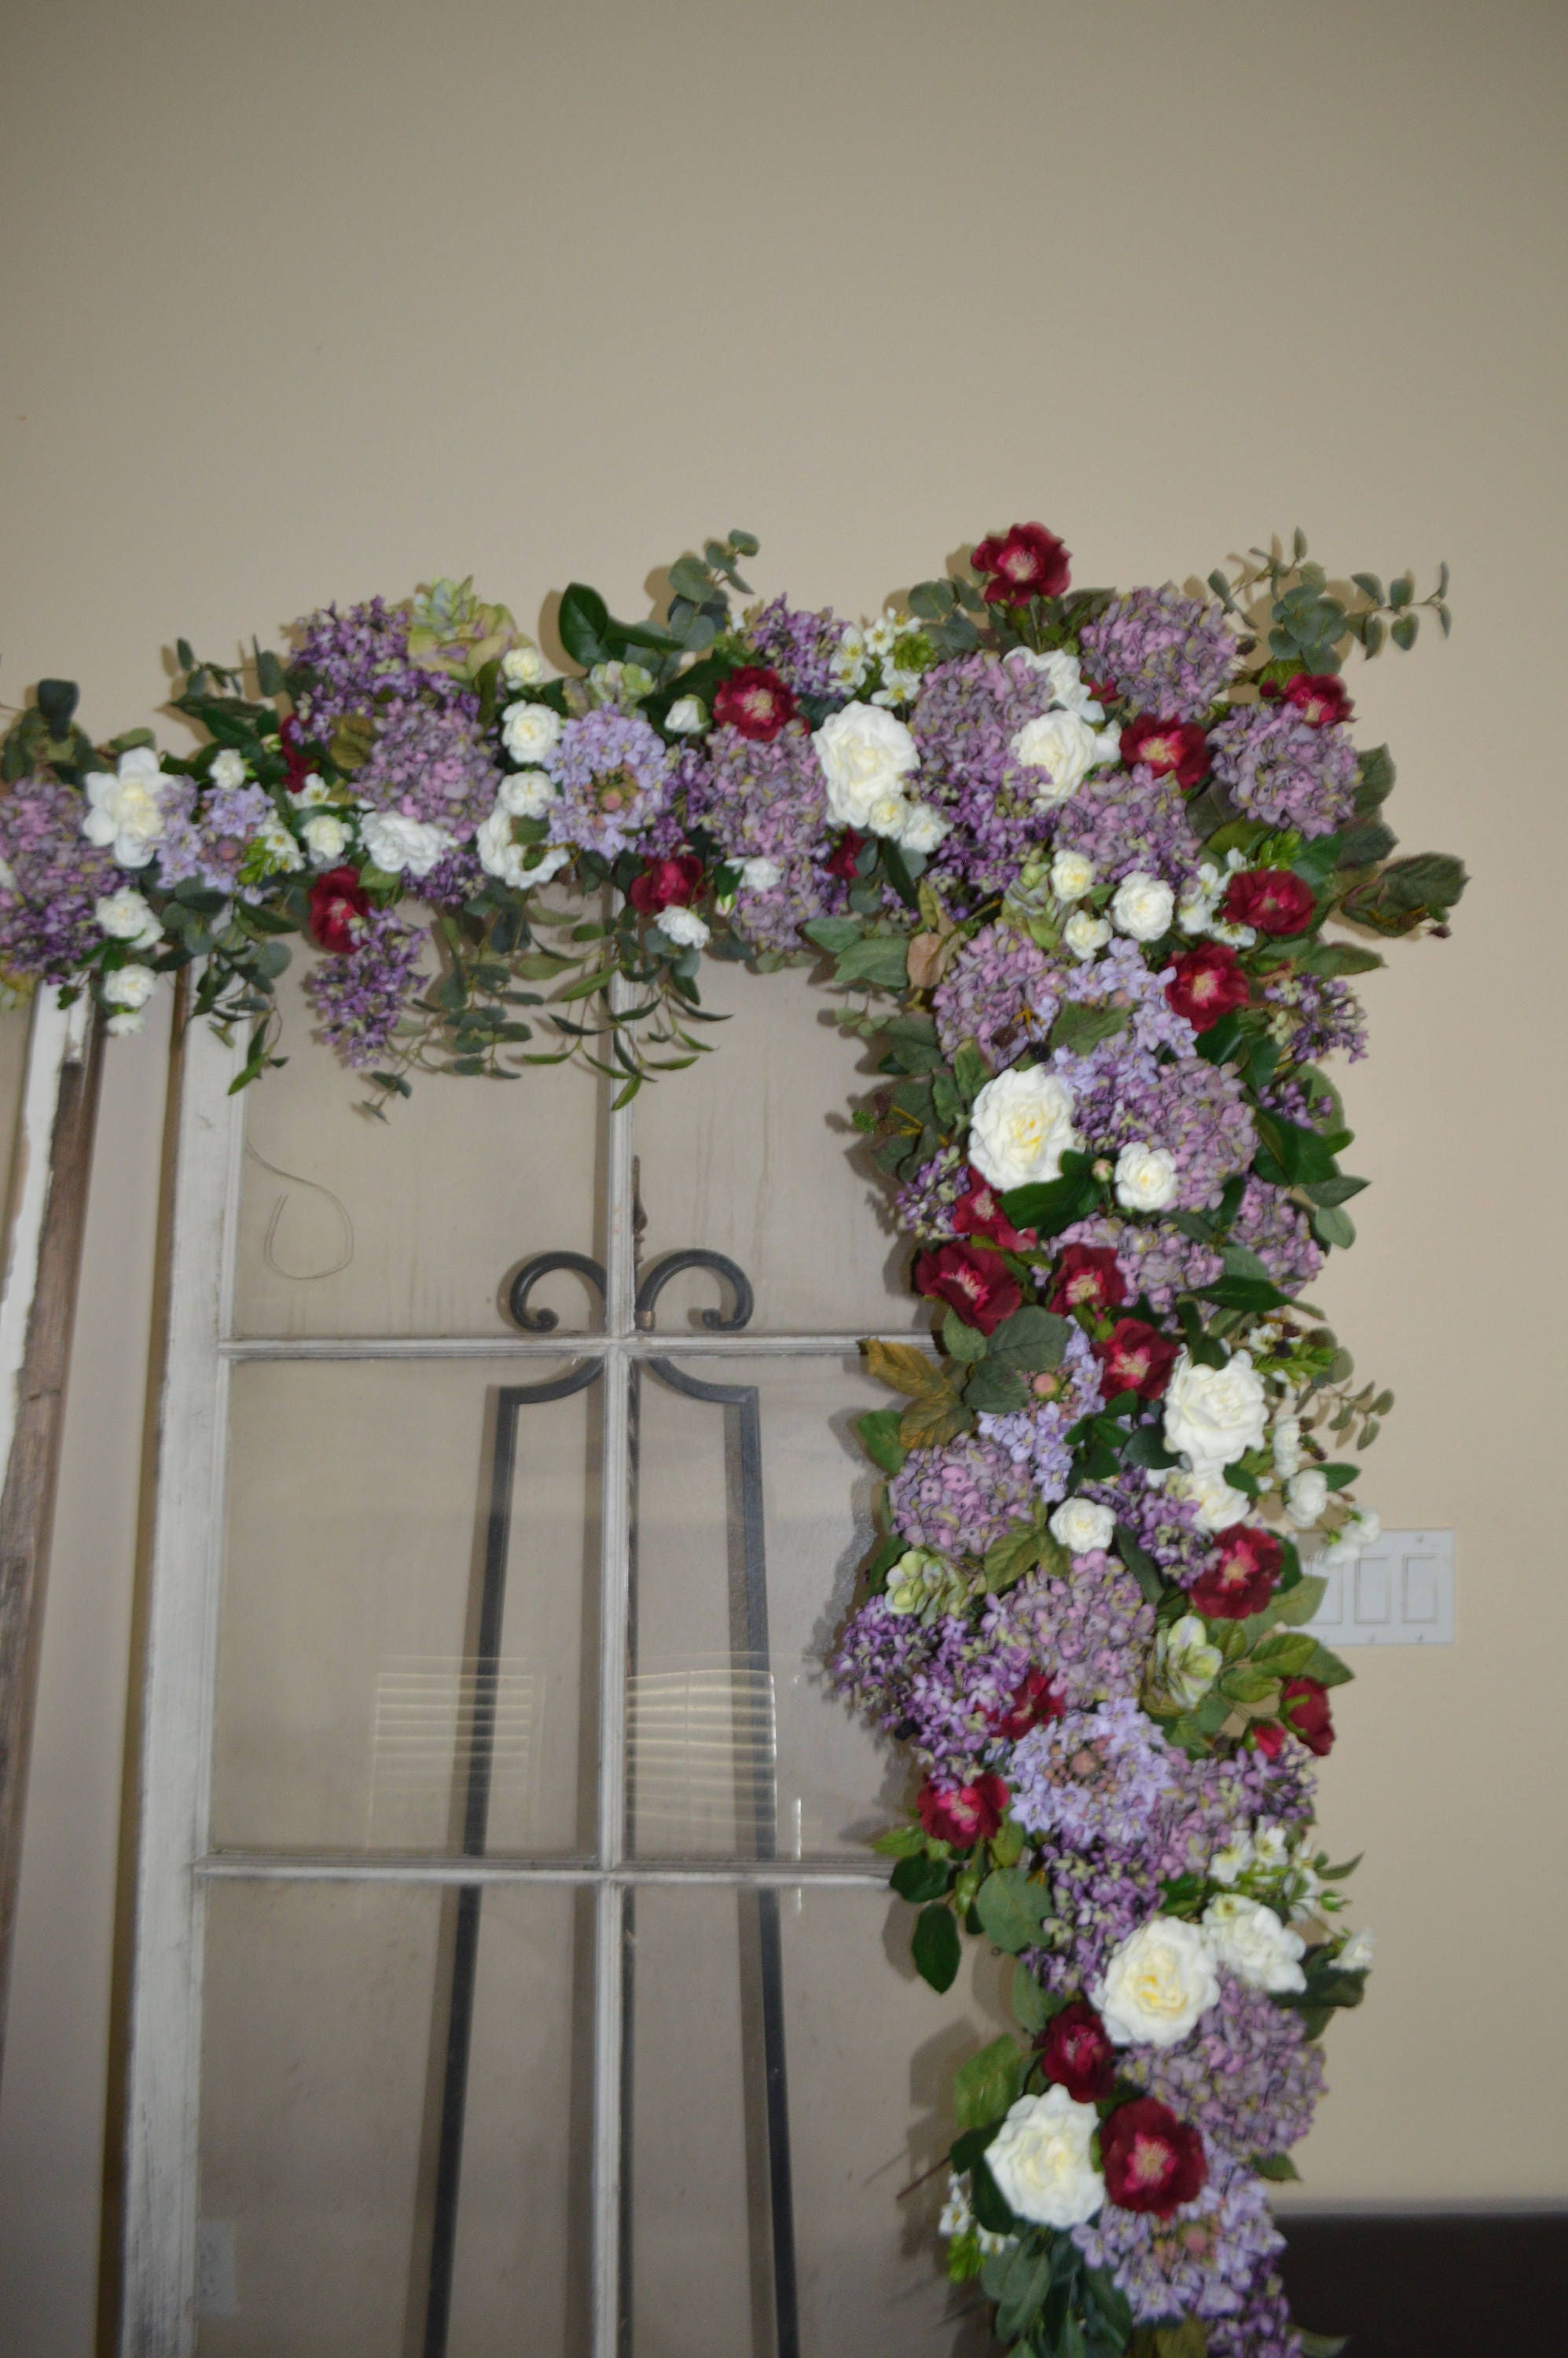 15 Lovely How To Decorate A Wedding Arch With Silk Flowers Wedding